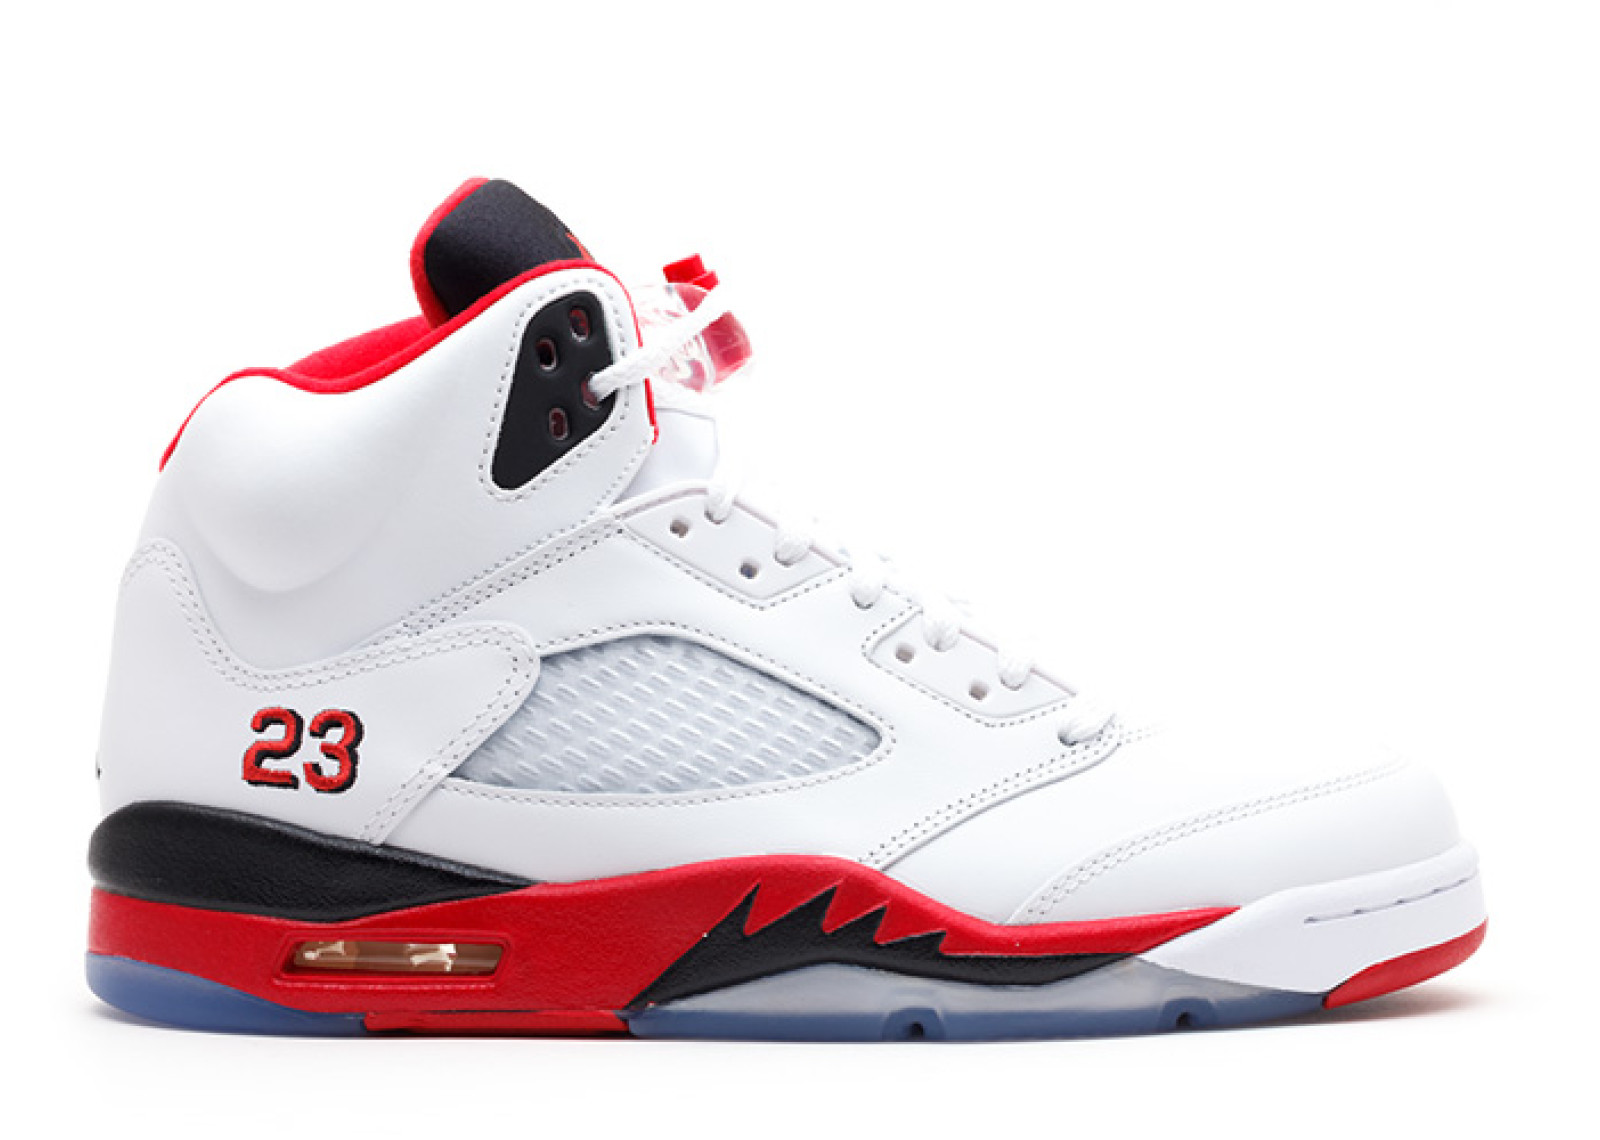 Air Jordan 5 Fire Red 2013 Release